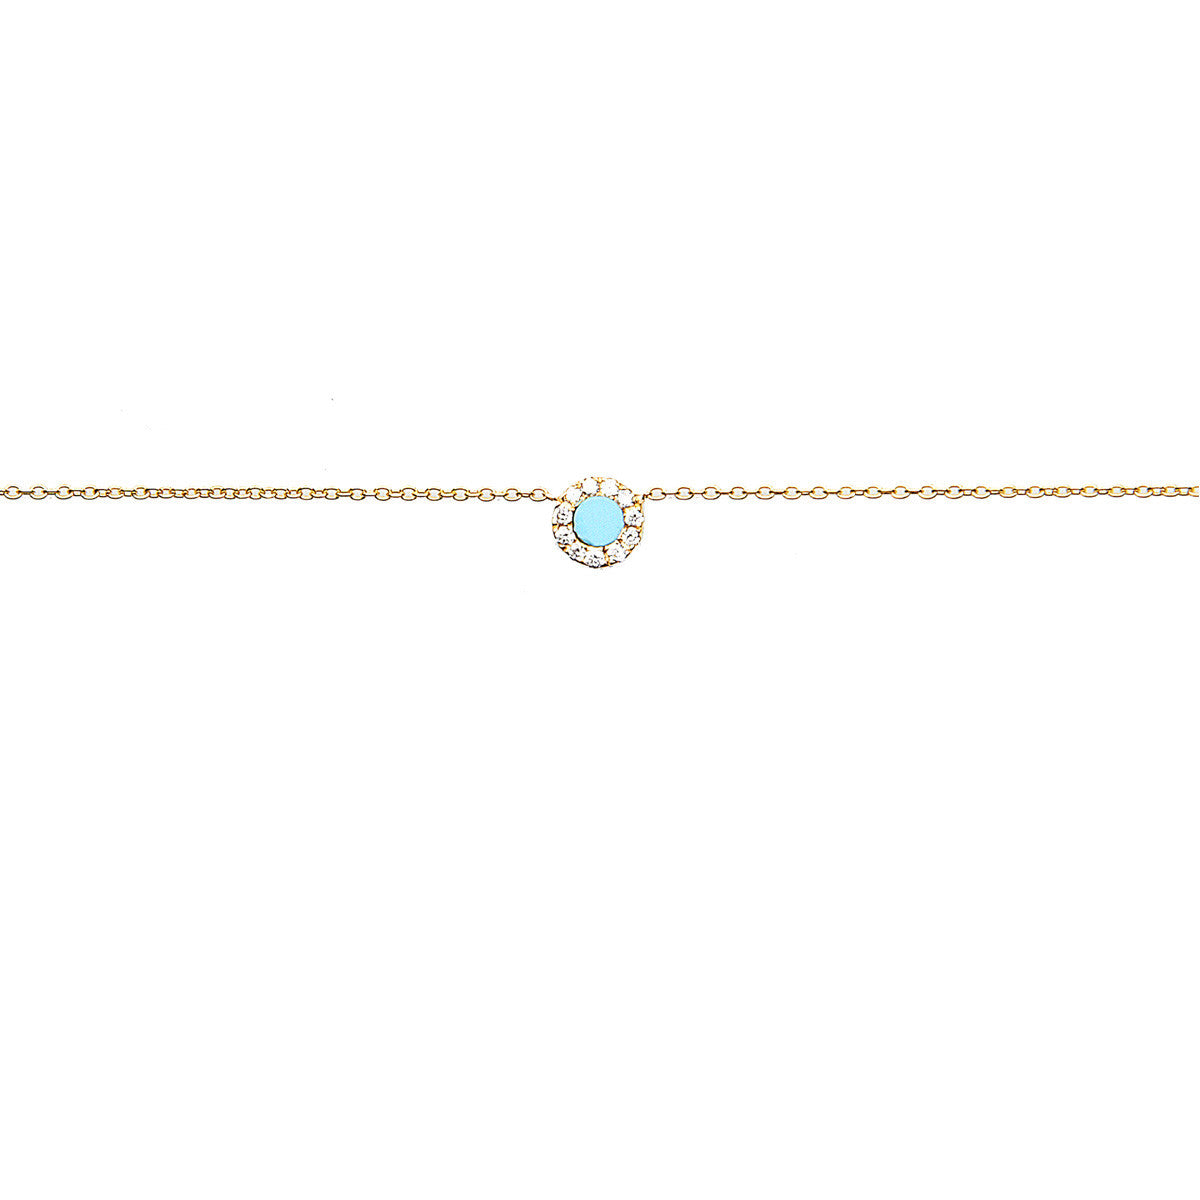 Diane Kordas Jewellery Turquoise Round Evil Eye Necklace 18kt gold